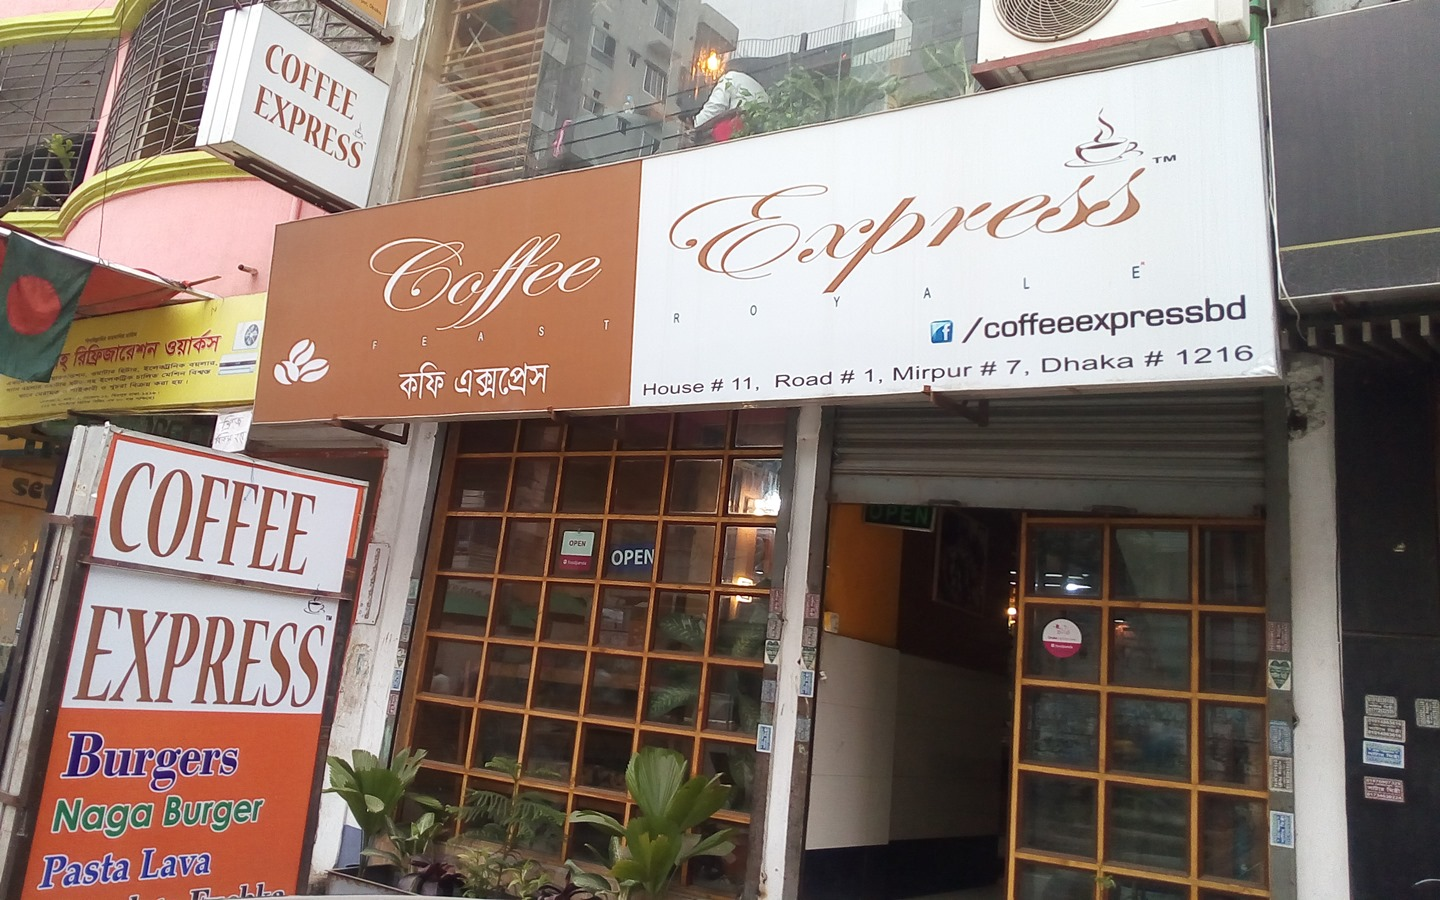 Exterior of Coffee Express